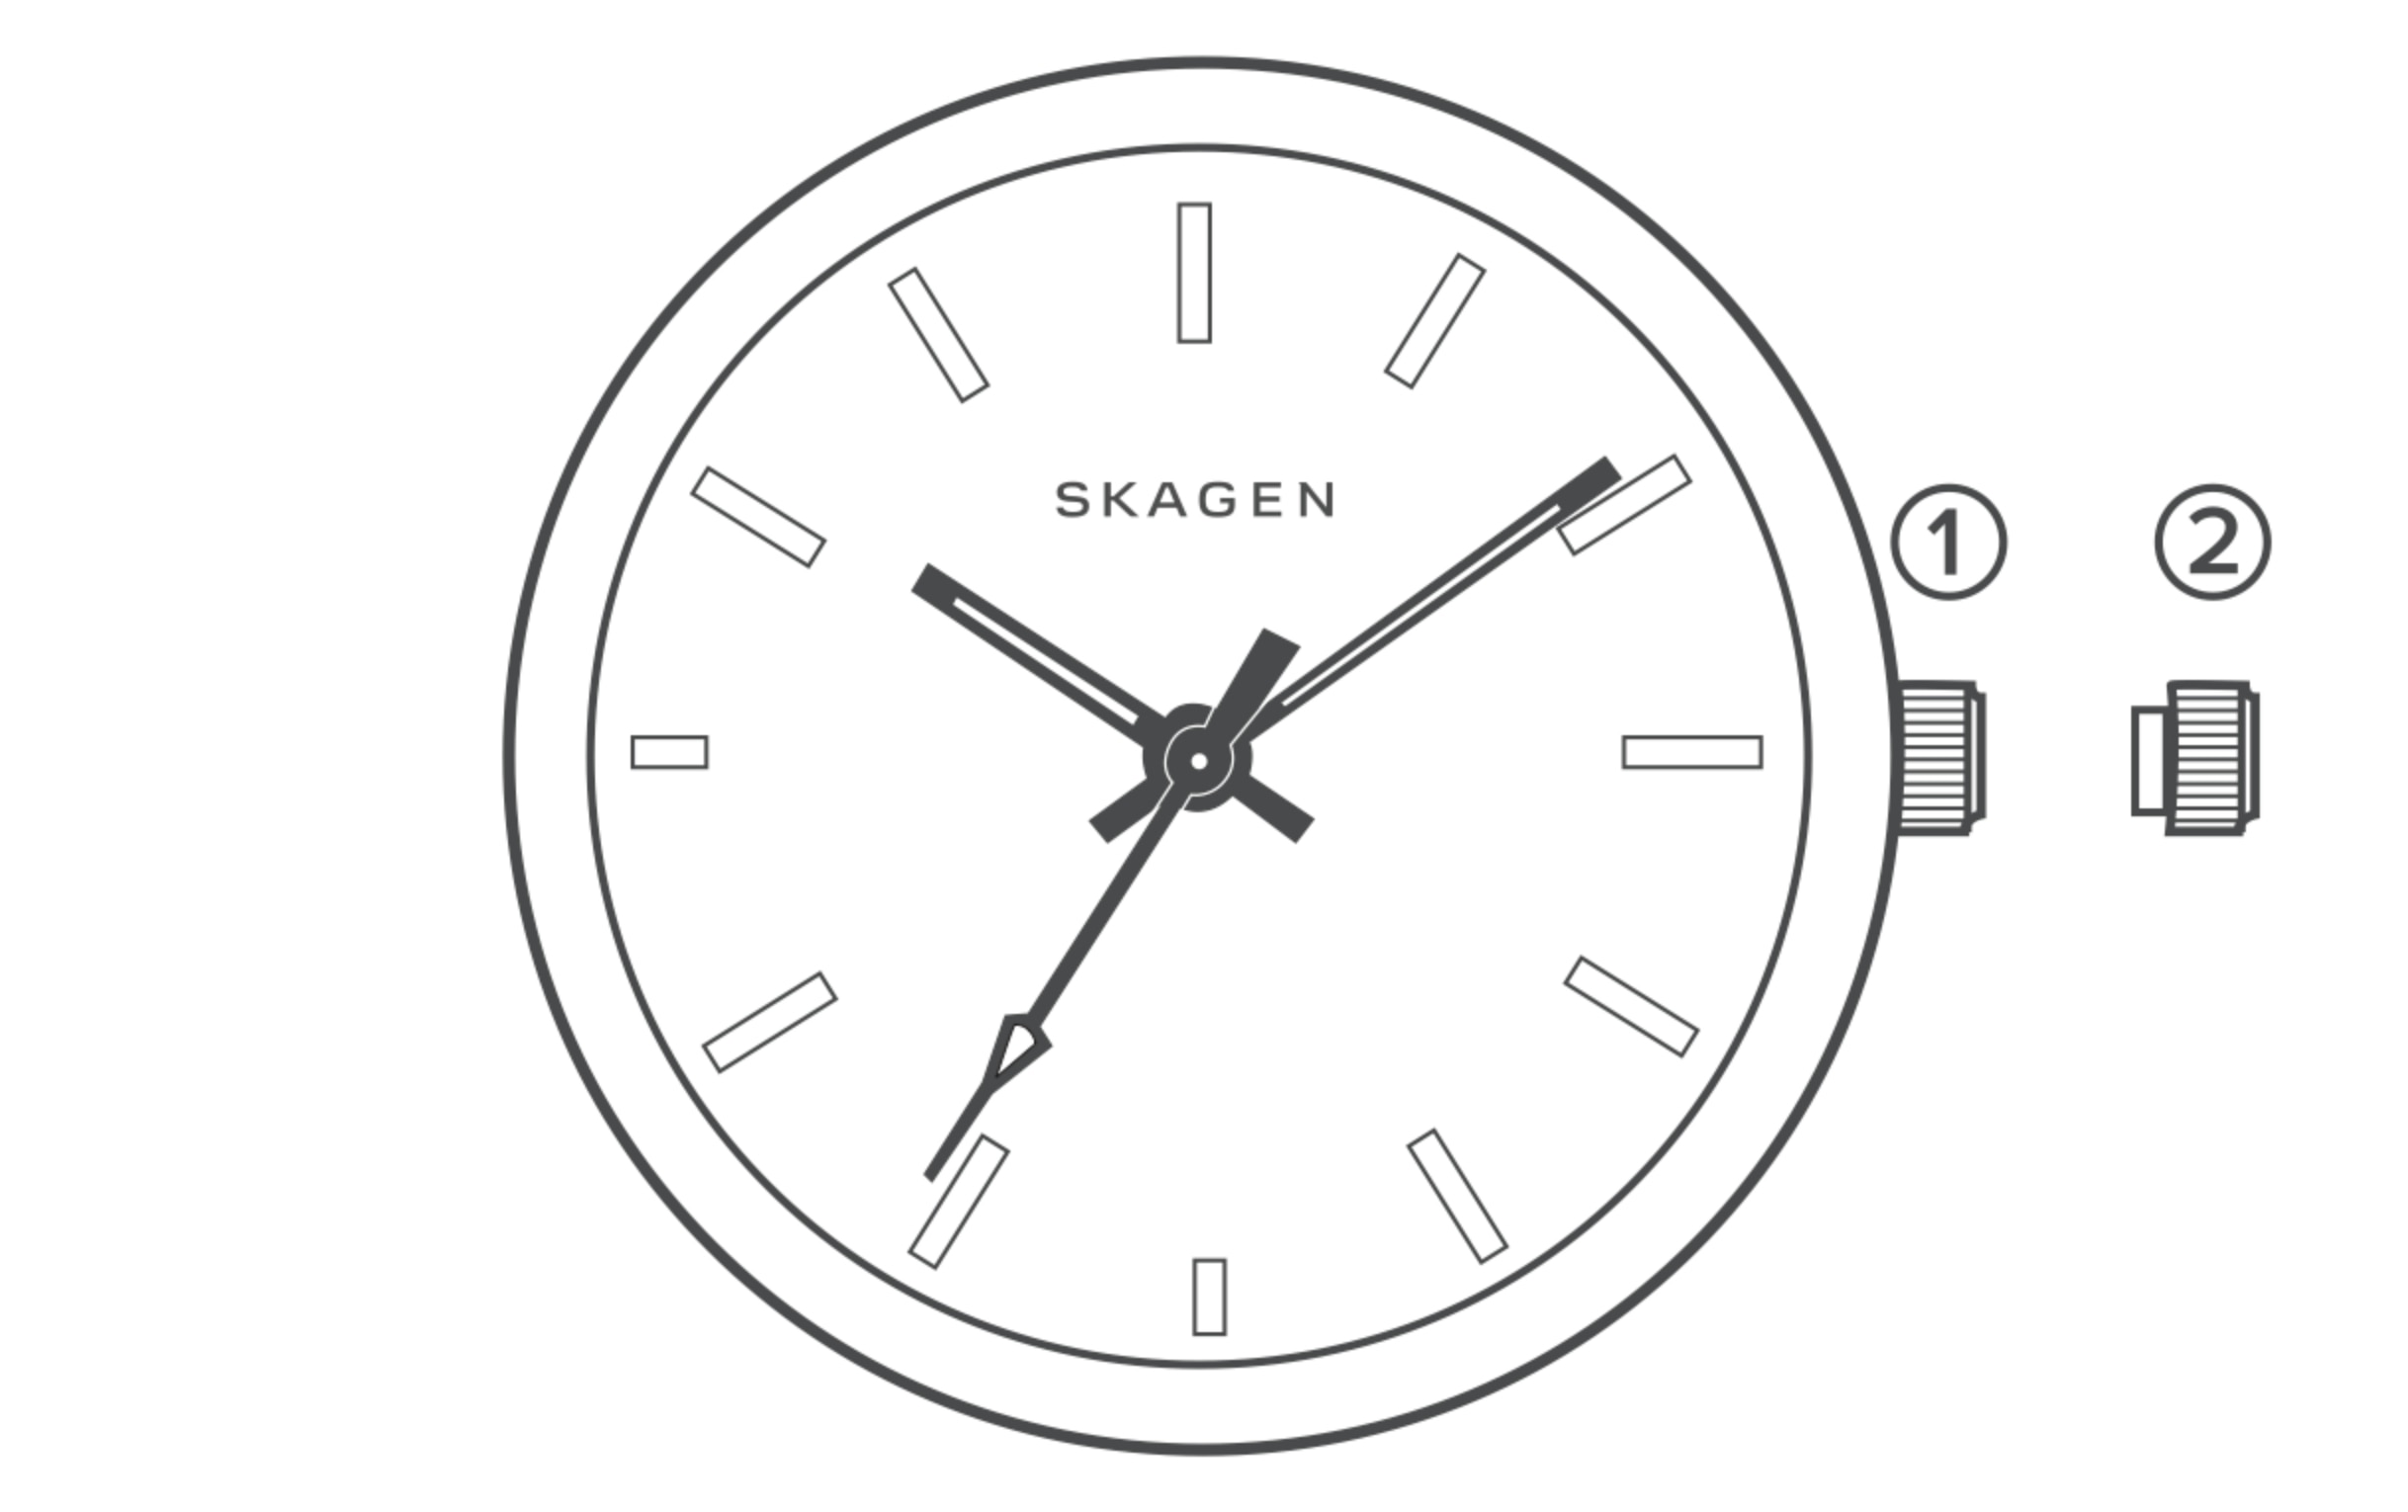 line art of a automatic watch dial, identifying the parts of the watch.